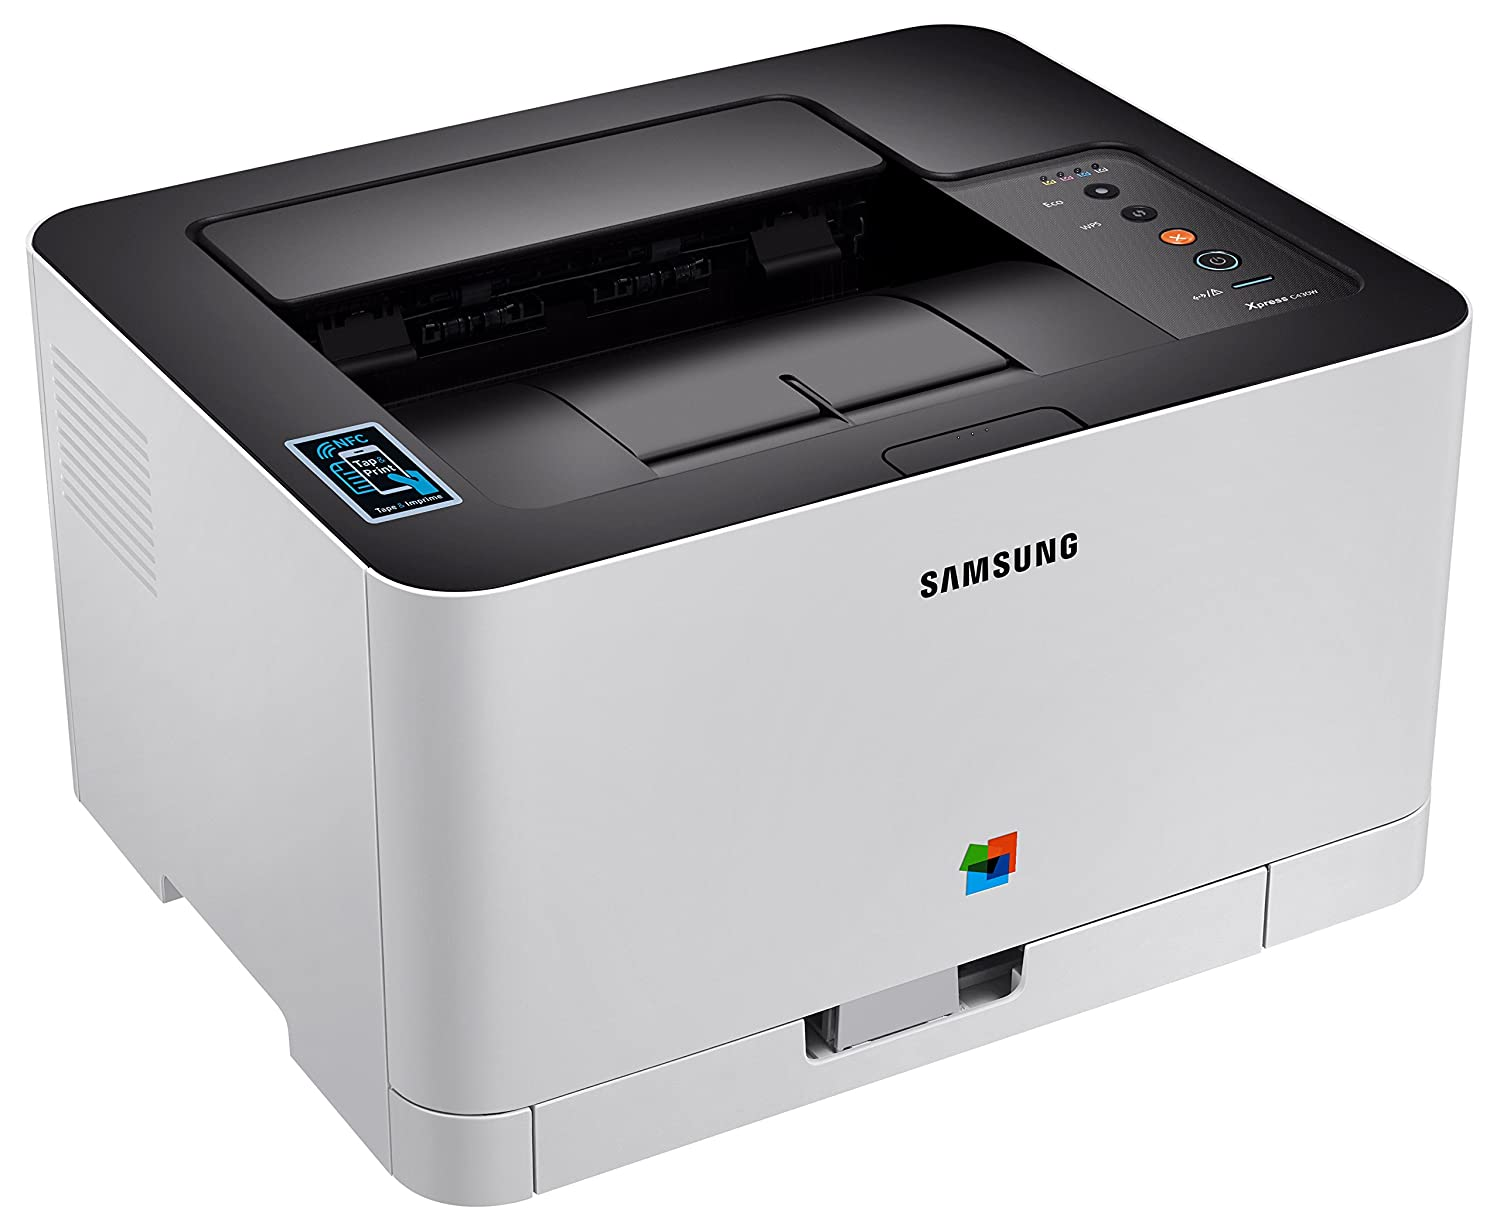 Amazon.com: Samsung SL-C430W Colour Laser Printer 18ppm 1 ...